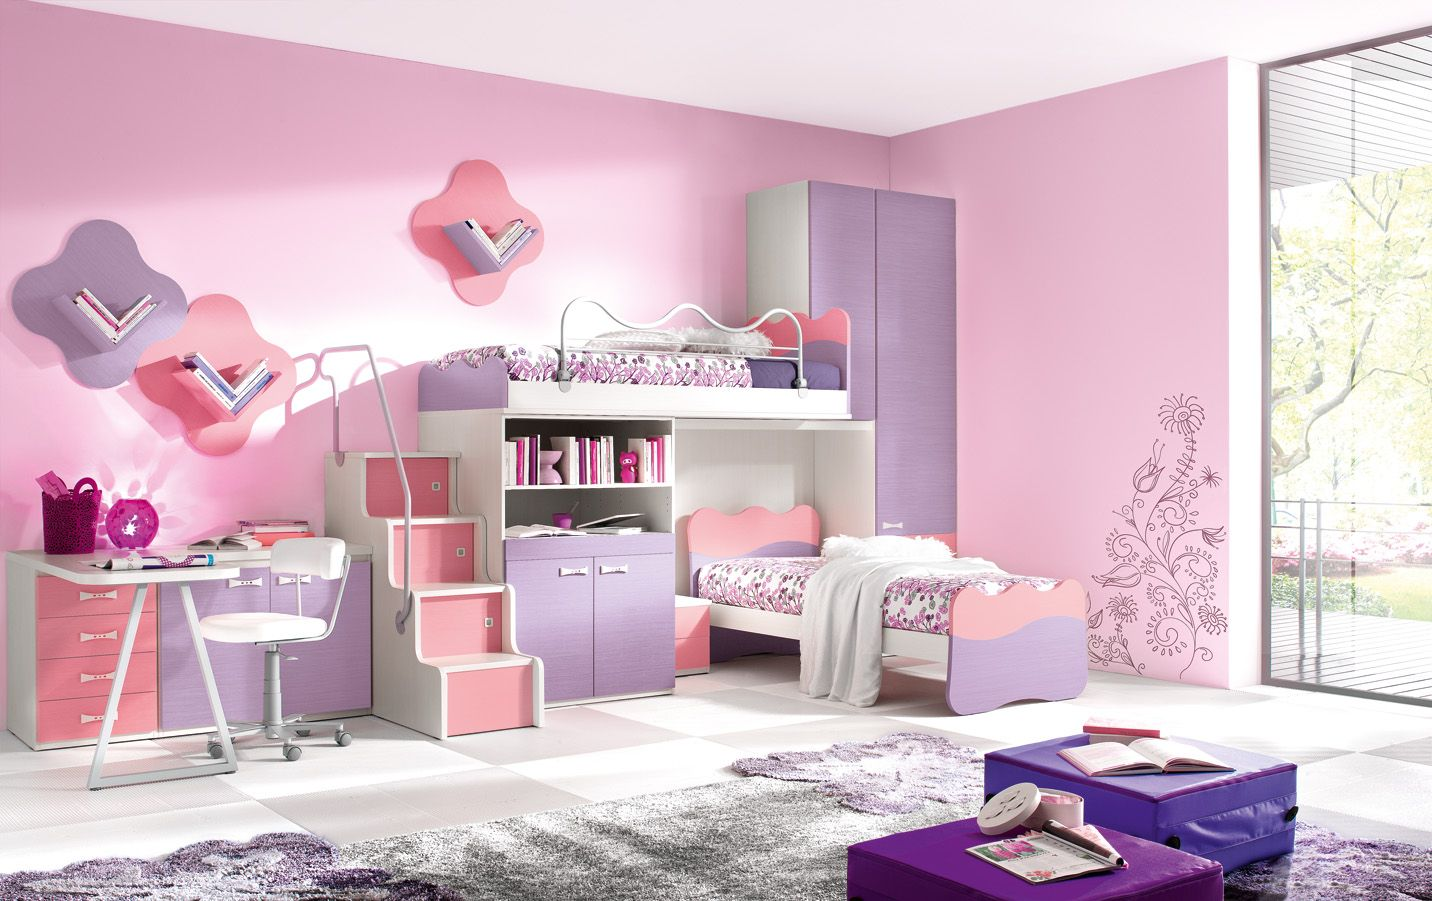 Bunk bed with desk underneath for girls - Bedroom Playroom Spacious Pink And Lavender Teenage Girl Bedroom Design With Bunk Bed And Movable Chair And Purple Cupboard And Storage Unit Beautiful